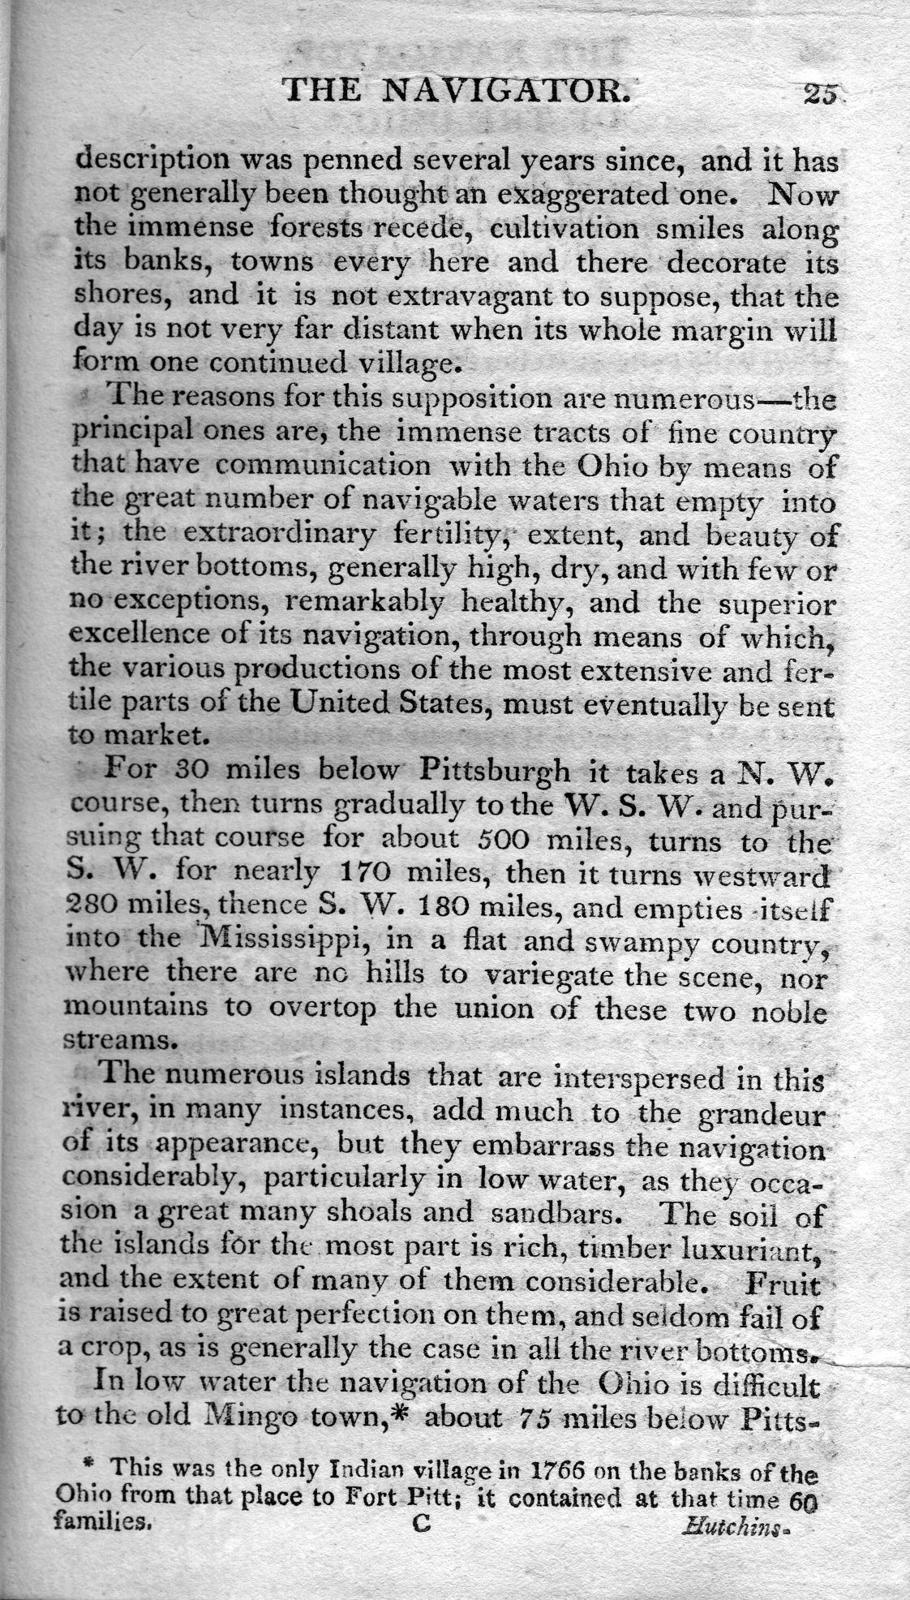 The navigator : containing directions for navigating the Monongahela, Allegheny, Ohio, and Mississippi rivers ; with an ample account of these much admired waters, from the head of the former to the mouth of the latter ; and a concise description of their towns, villages, harbours, settlements, &c. with accurate maps of the Ohio and Mississippi ; to which is added, an appendix ...